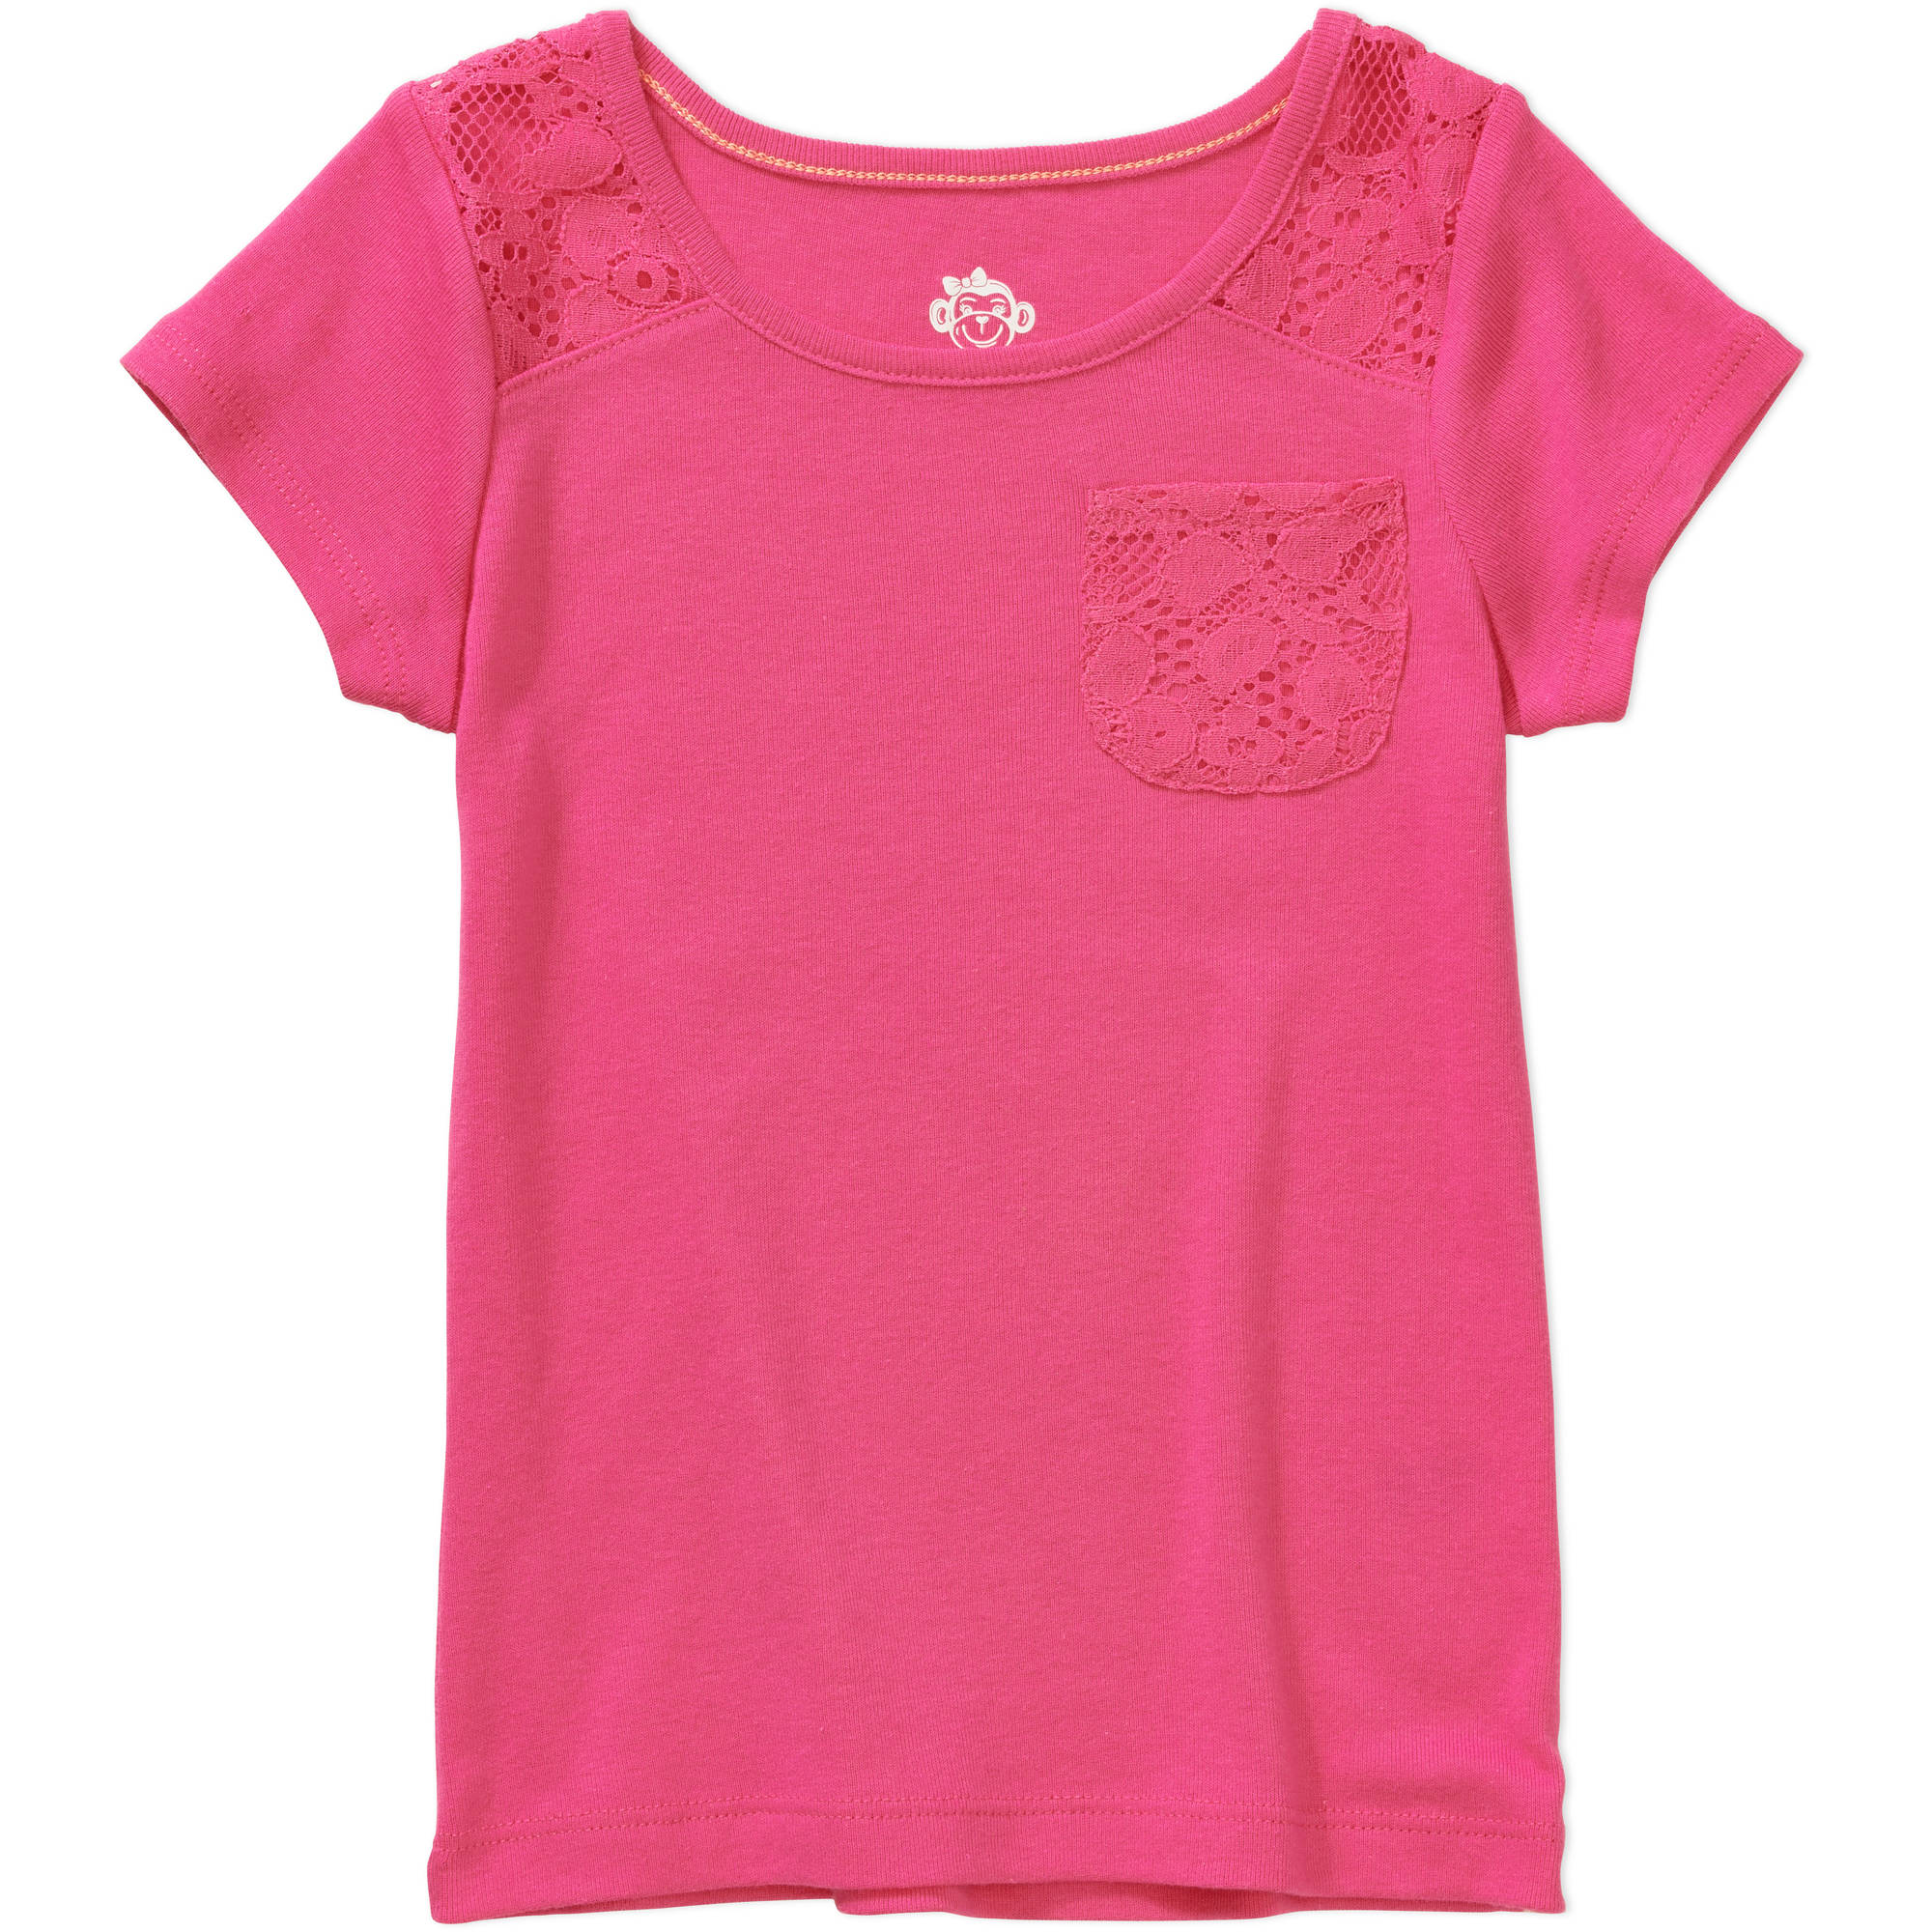 365 Kids from Garanimals Girls' Solid Lace Tee